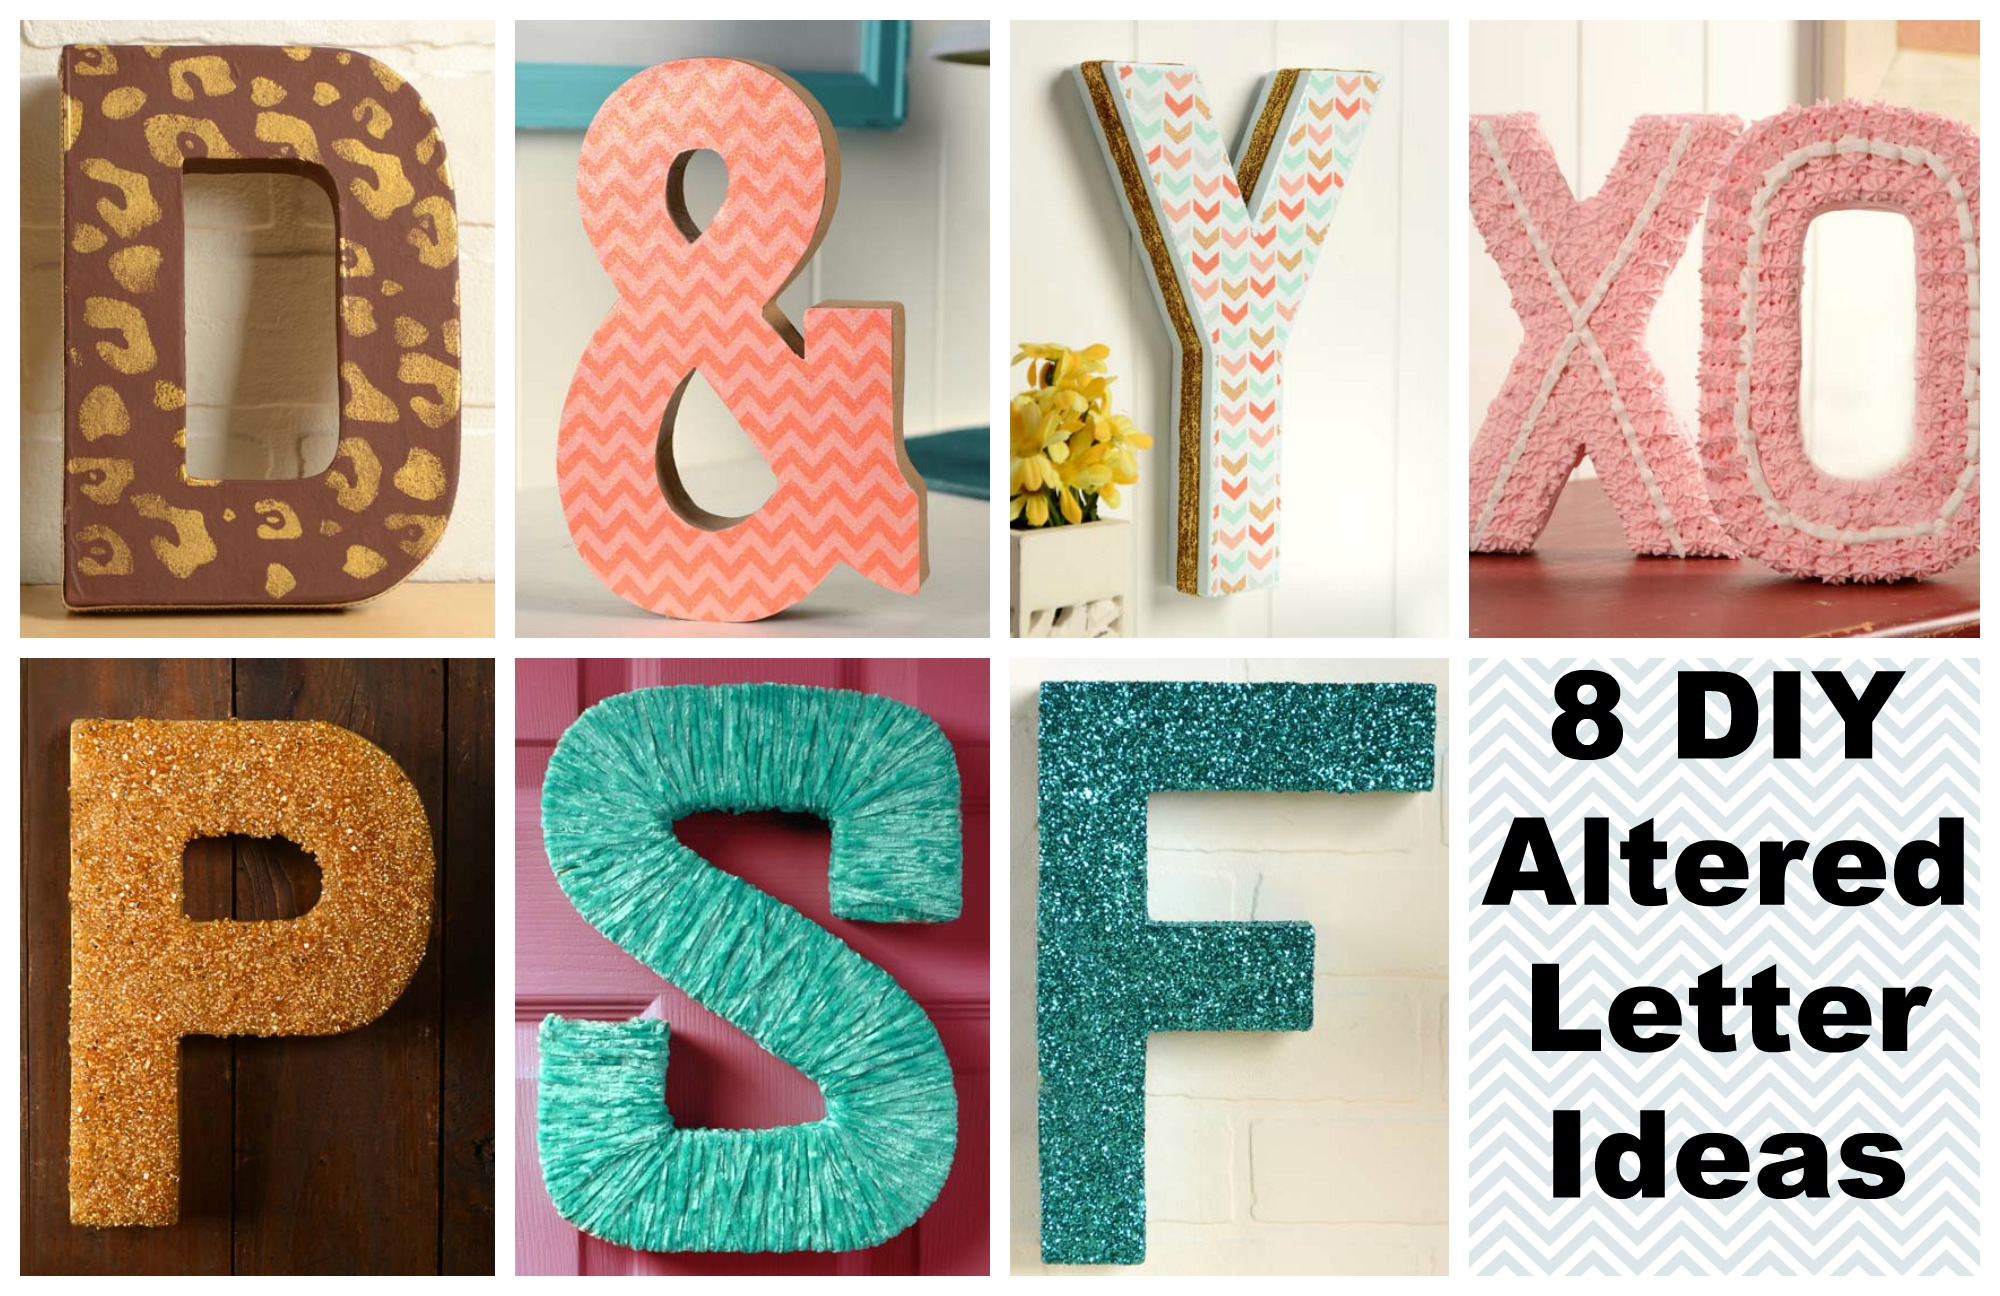 Make it with Mod Podge: 8 DIYs for Altered Letters